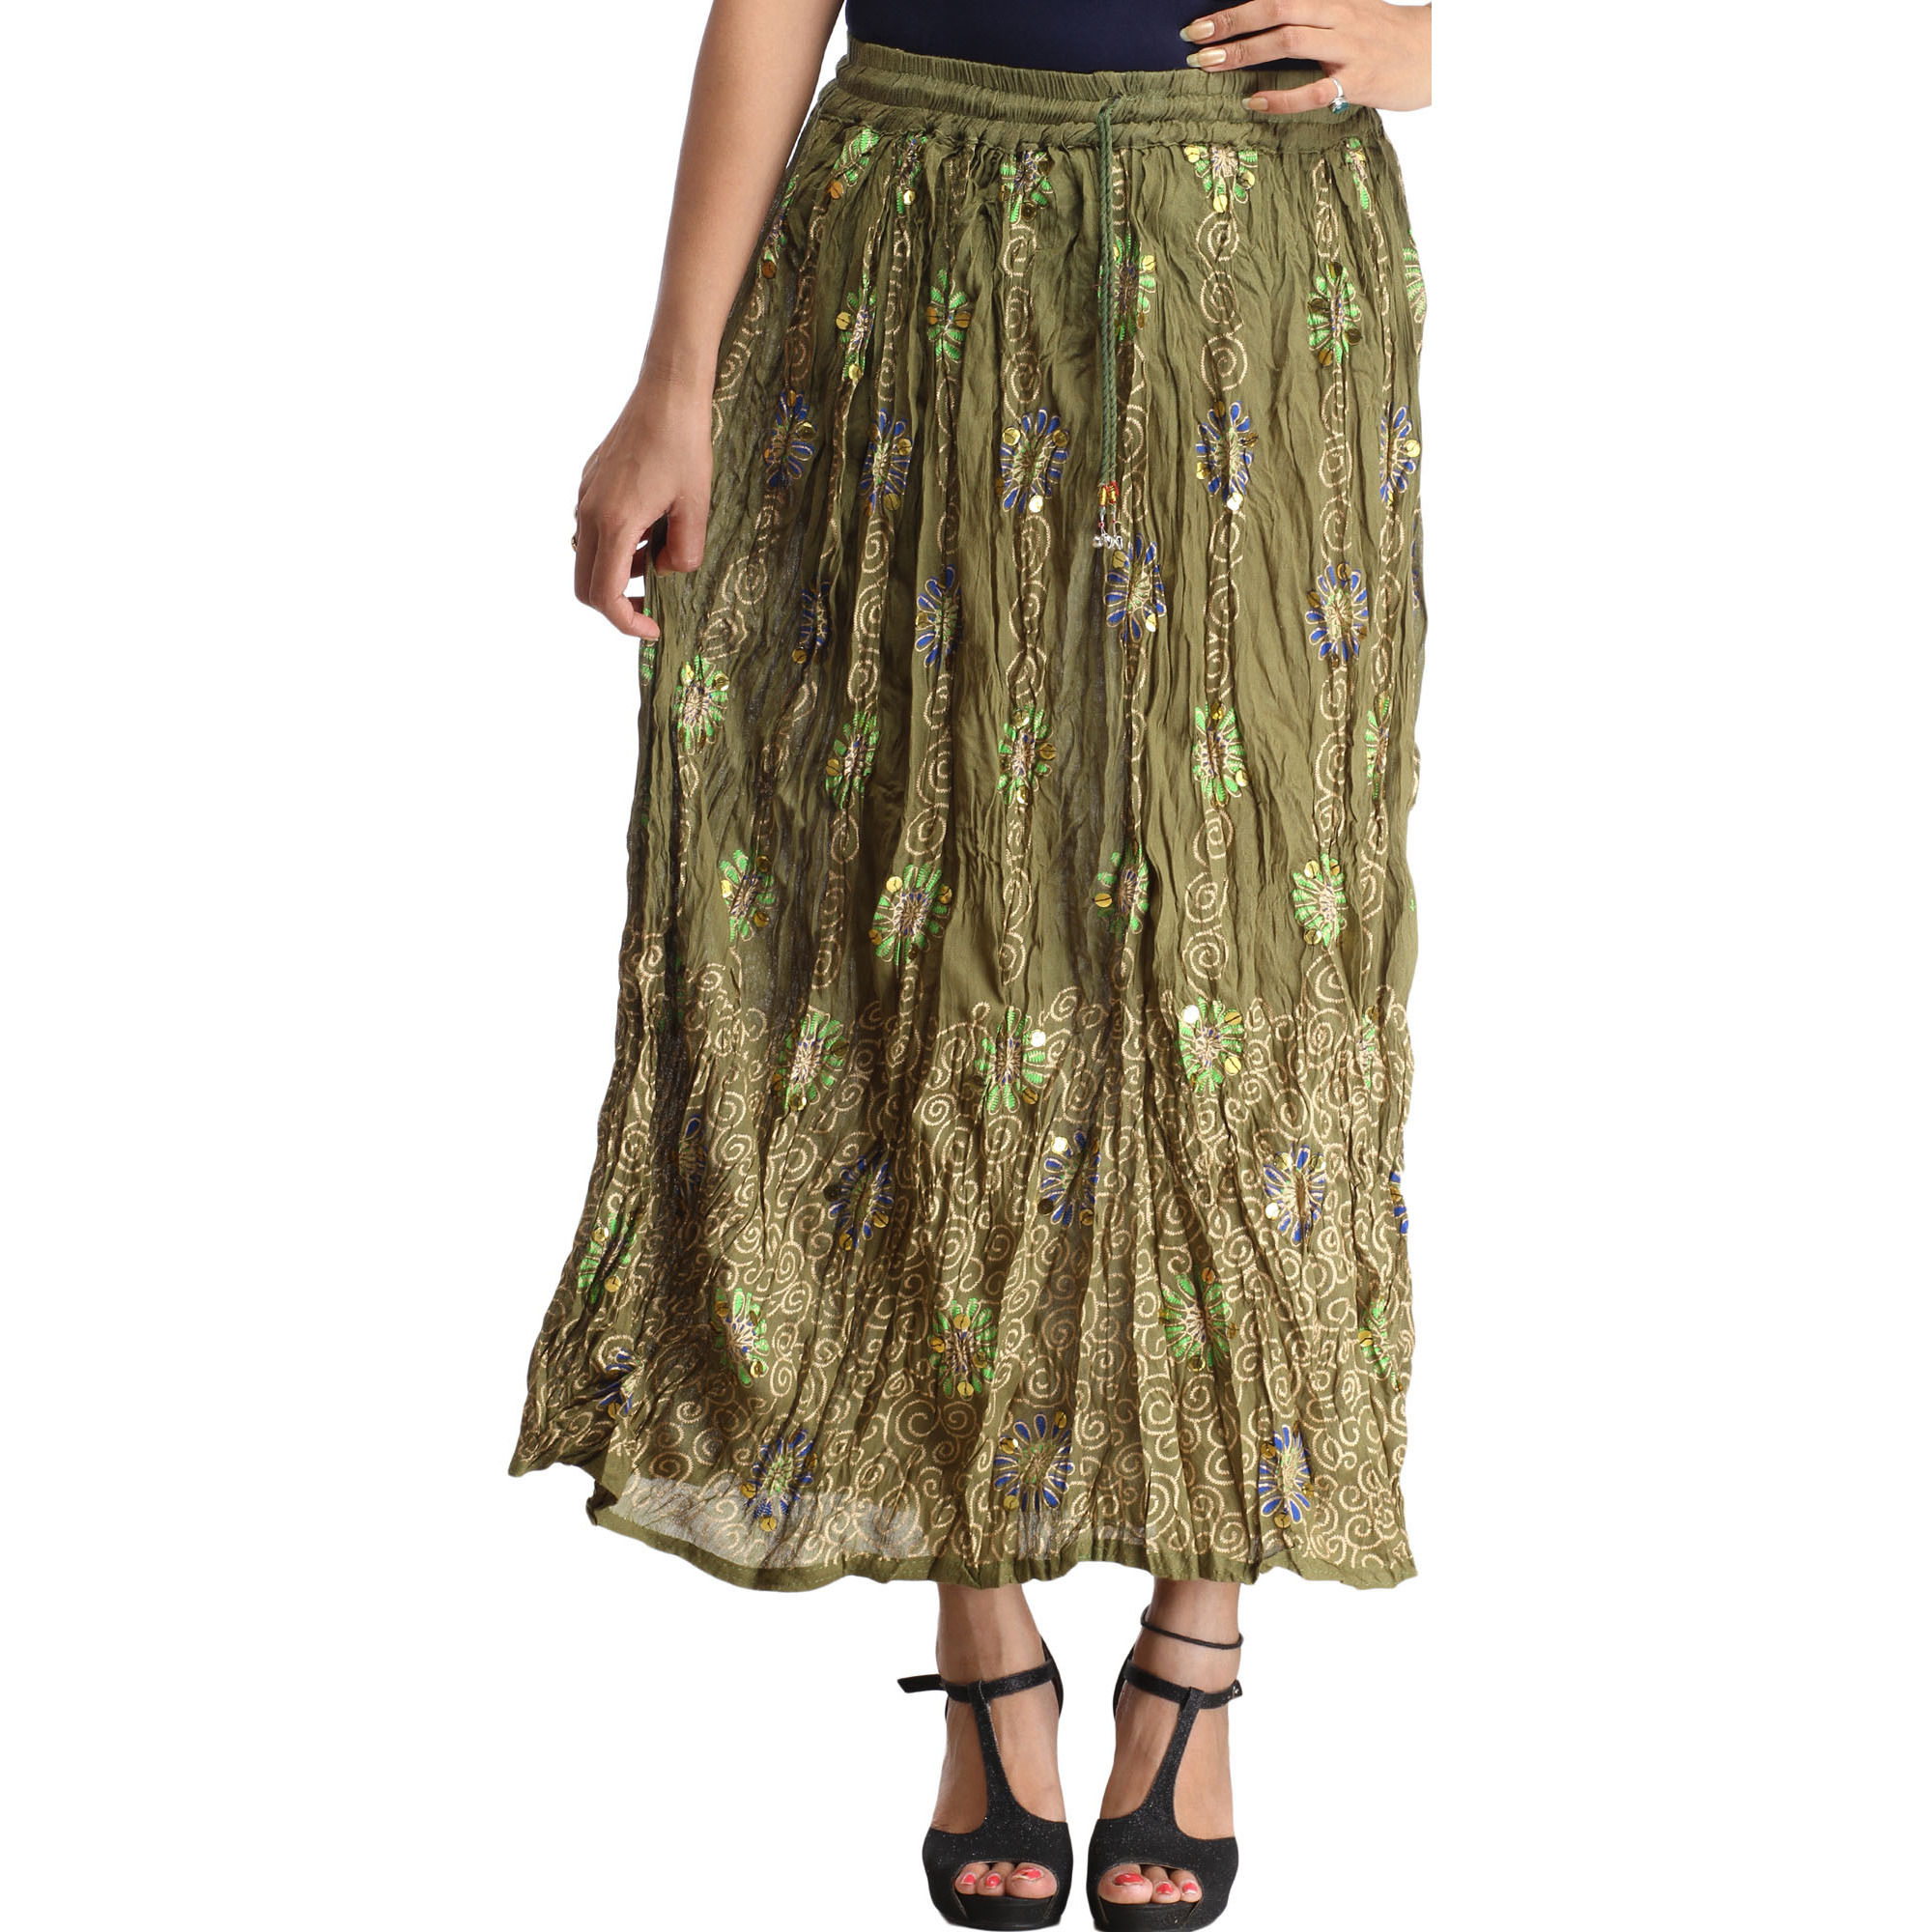 Calliste-Green Crinkled Long Skirt with Printed Spirals and Sequins